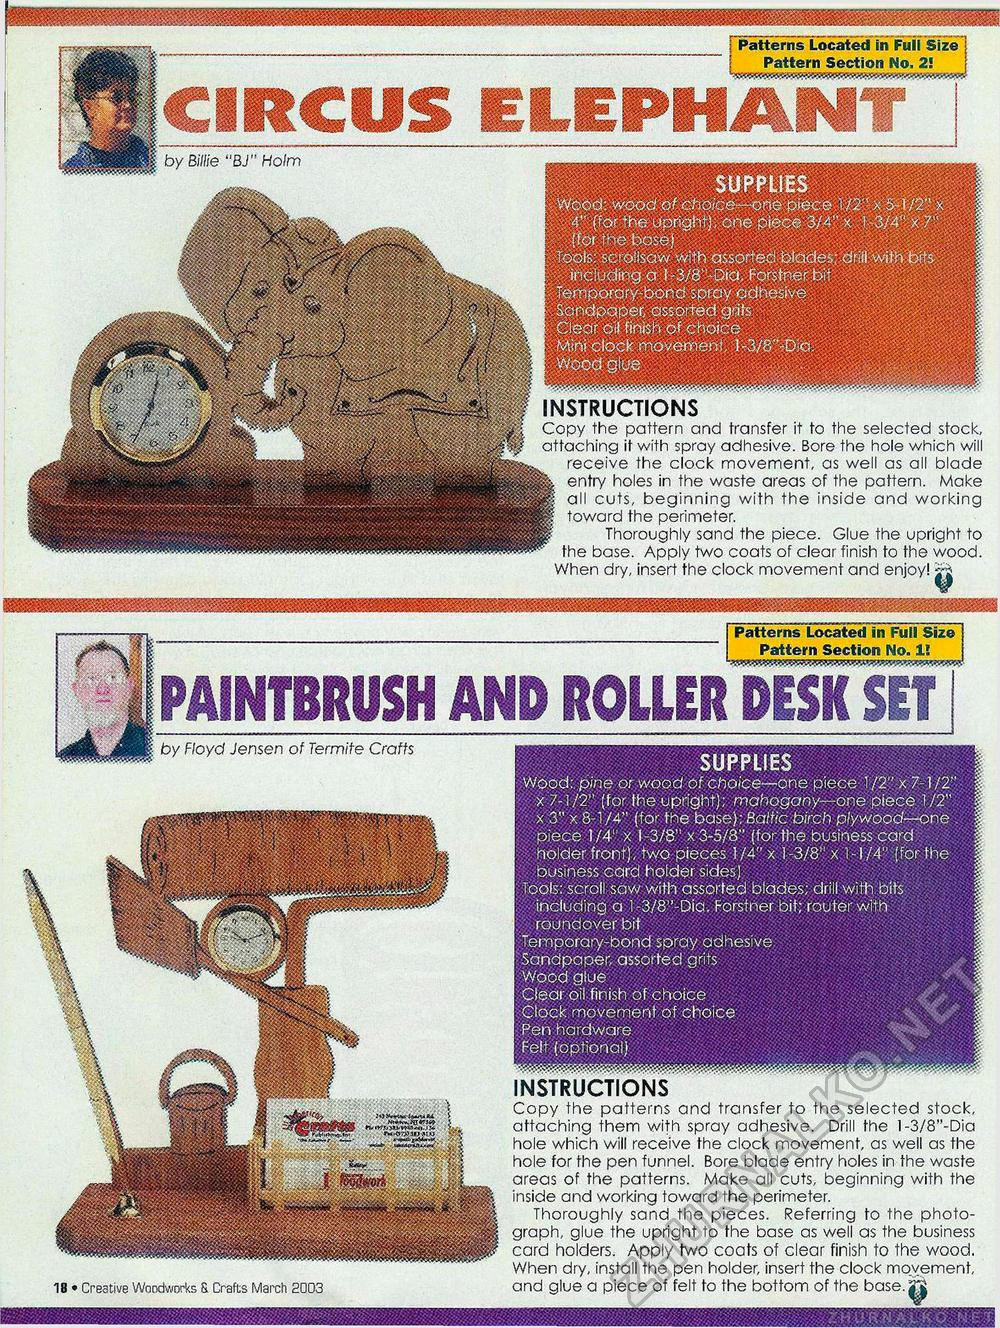 Creative Woodworks & crafts 2003-03, страница 18